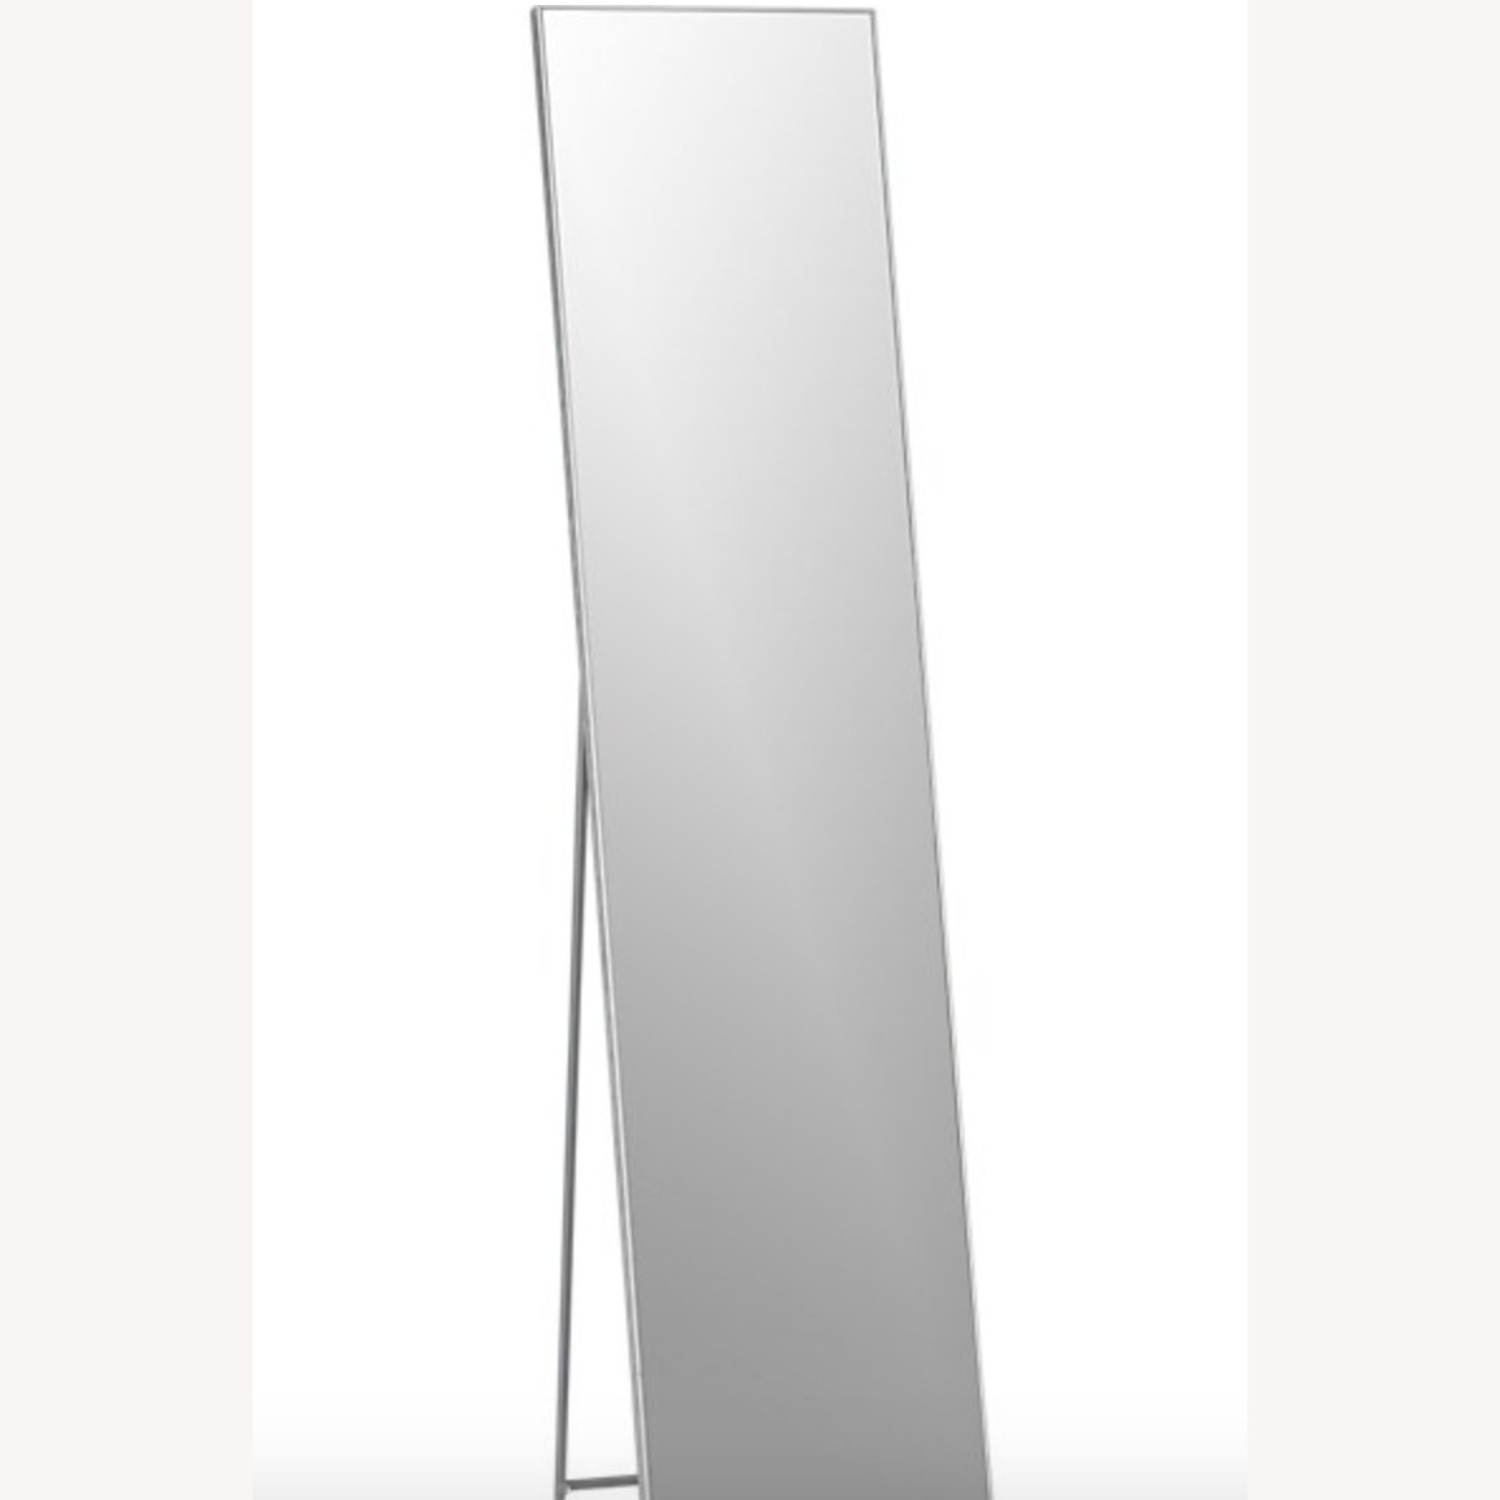 CB2 Stand Up Infinity Mirror